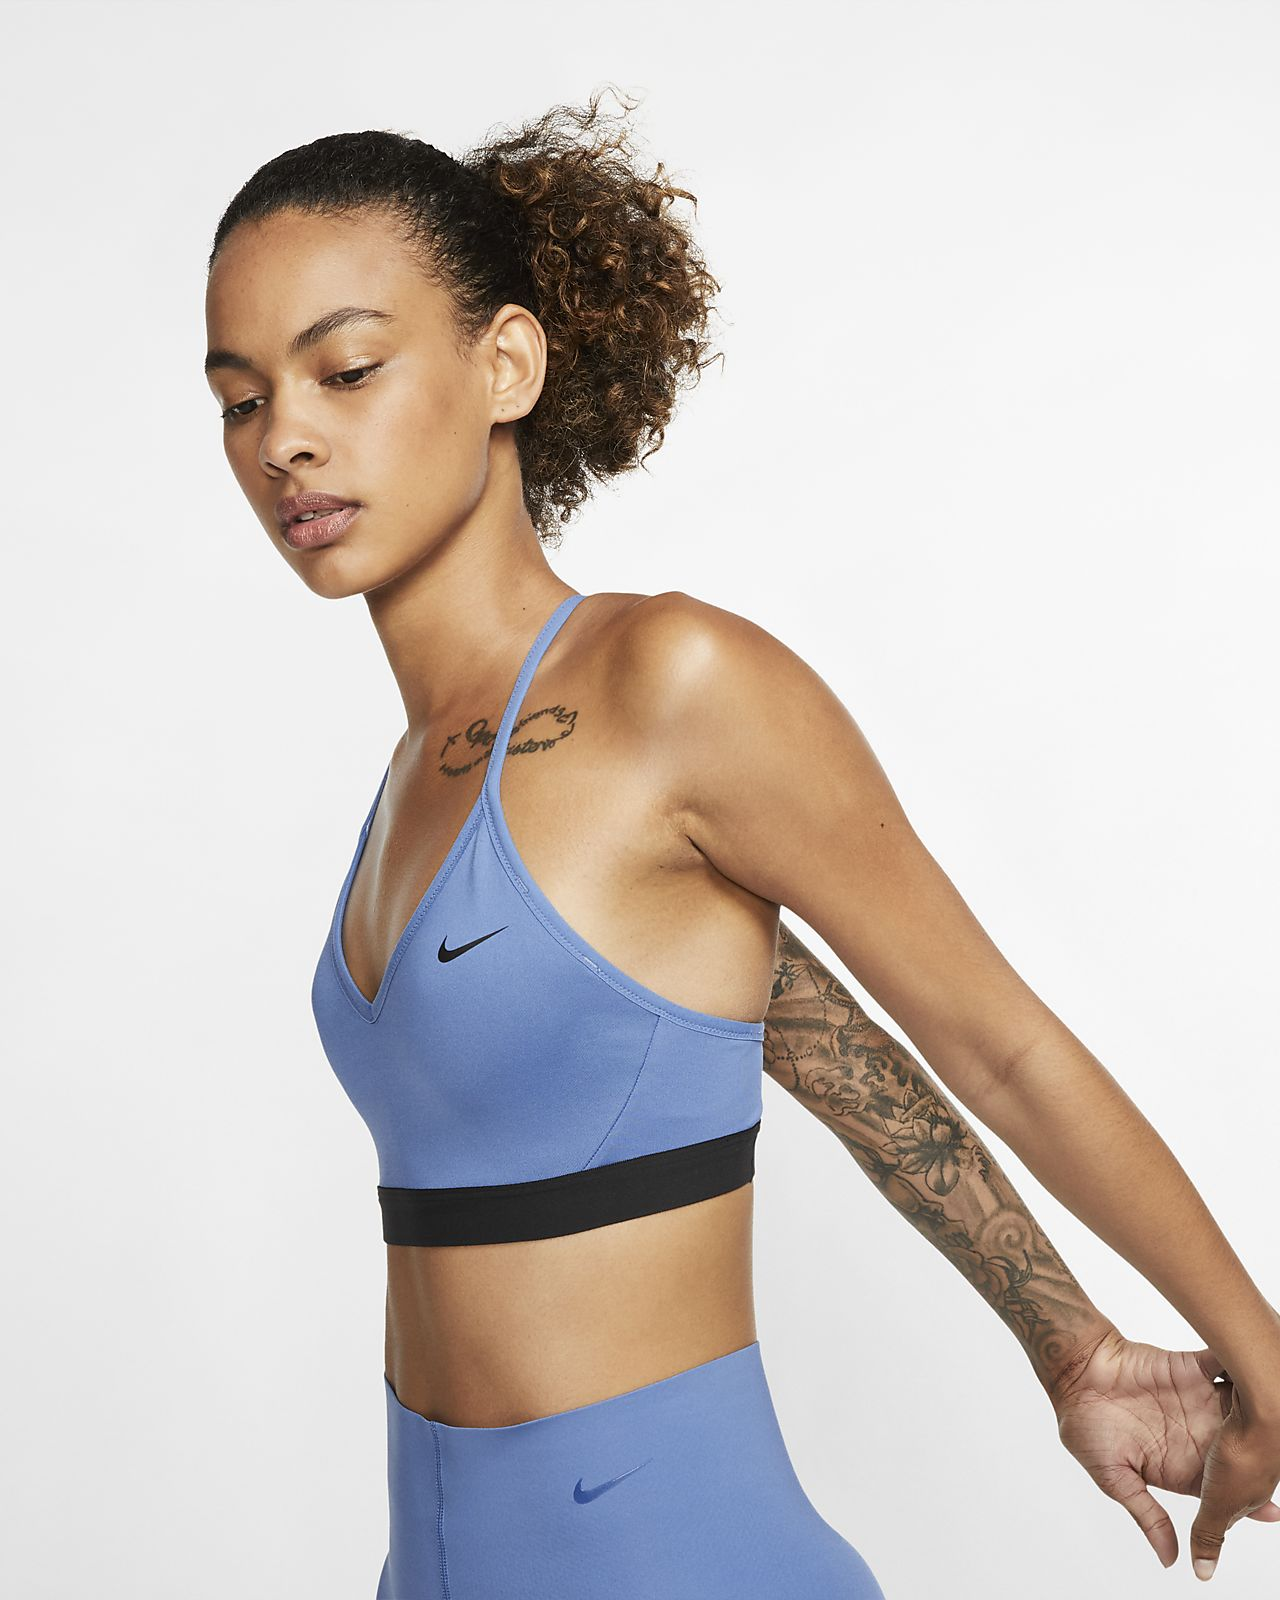 d8ceeb6339e Nike Indy Women s Light-Support Sports Bra. Nike.com